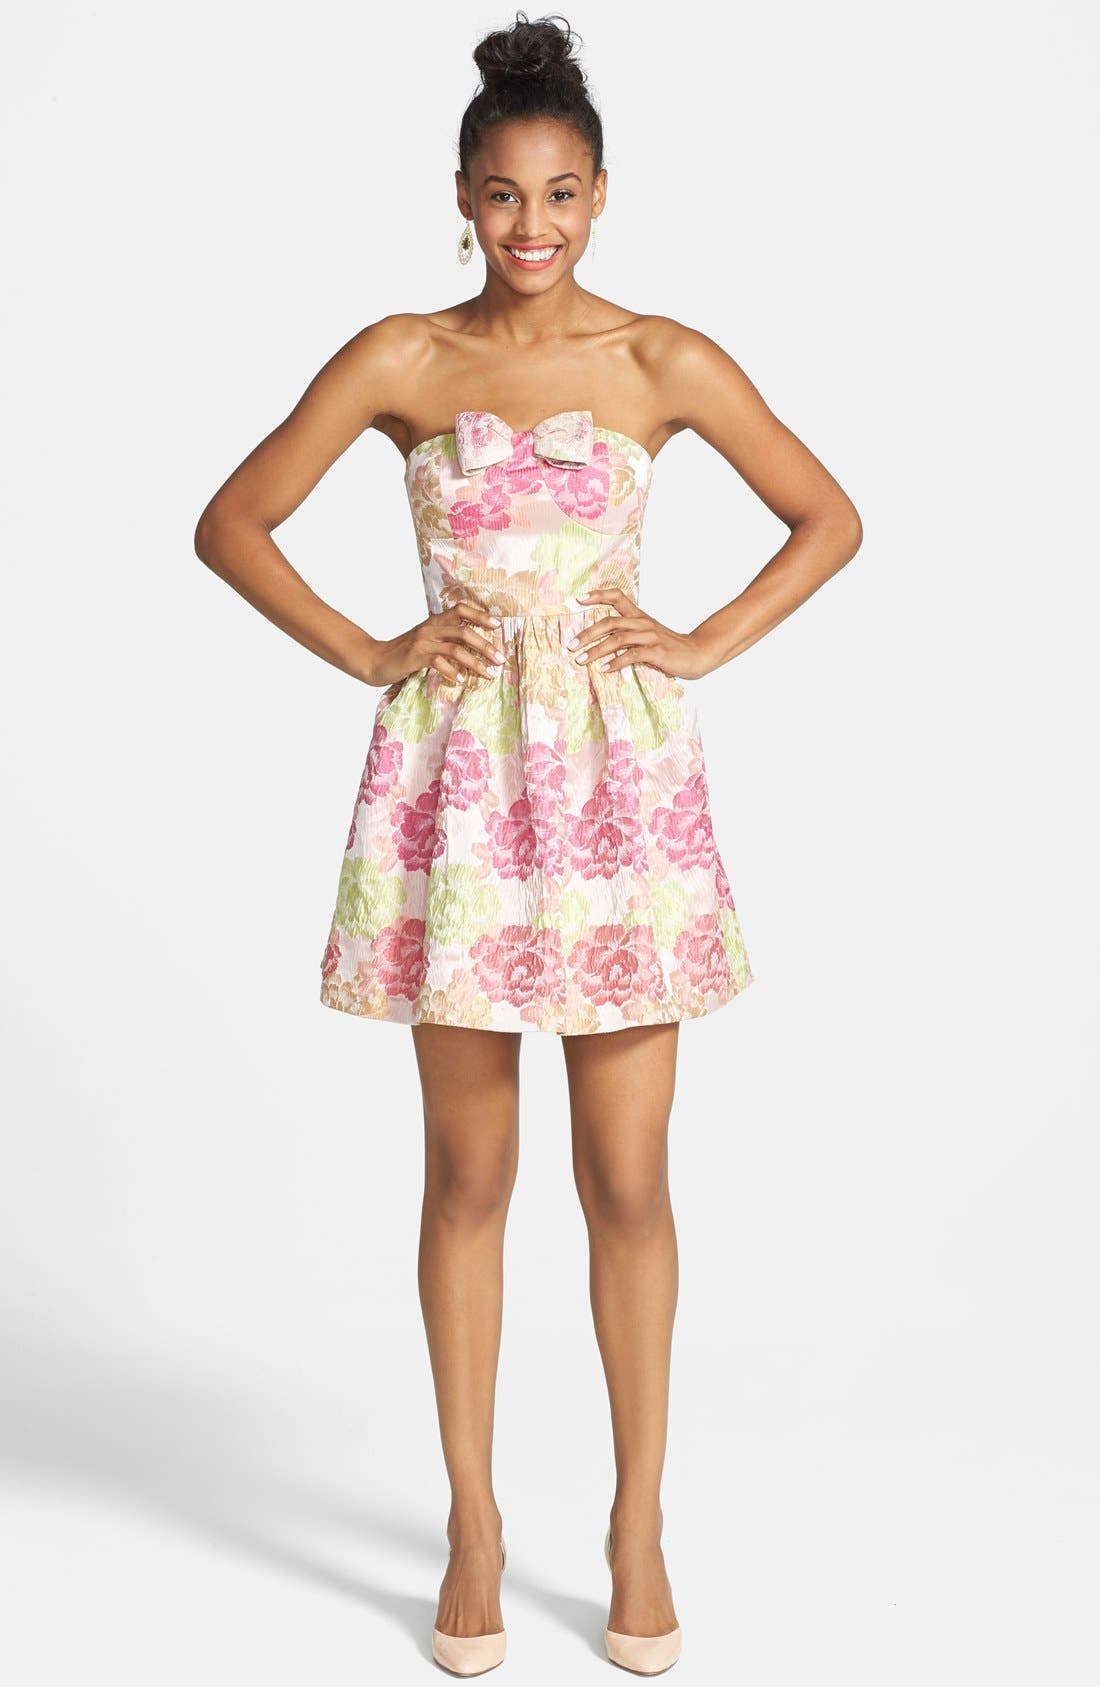 Alternate Image 1 Selected - a. drea 'Ariana' Textured Floral Strapless Dress (Juniors)